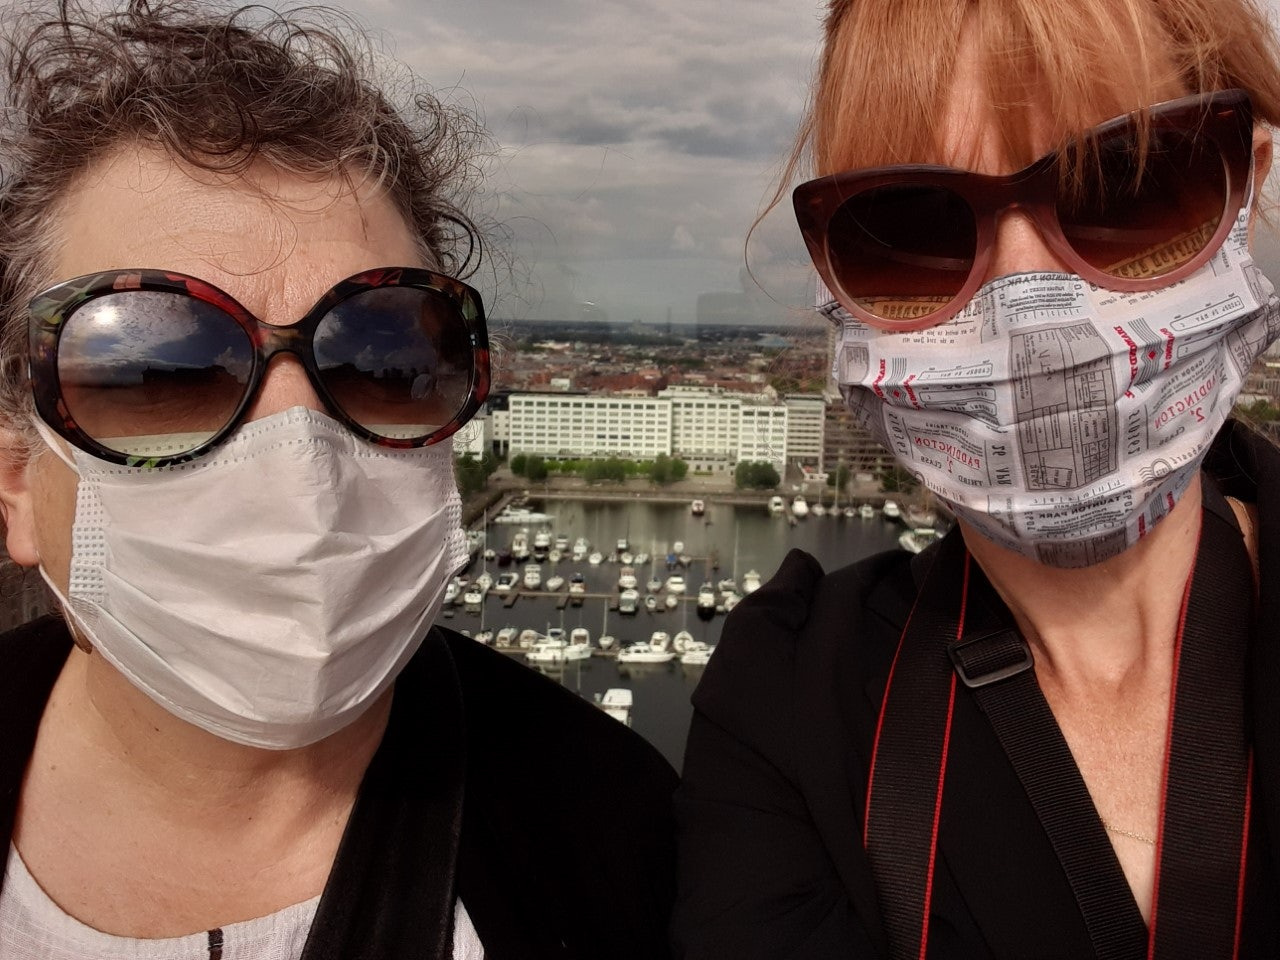 Masked translators Laura Vroomen and Lorraine T. Miller